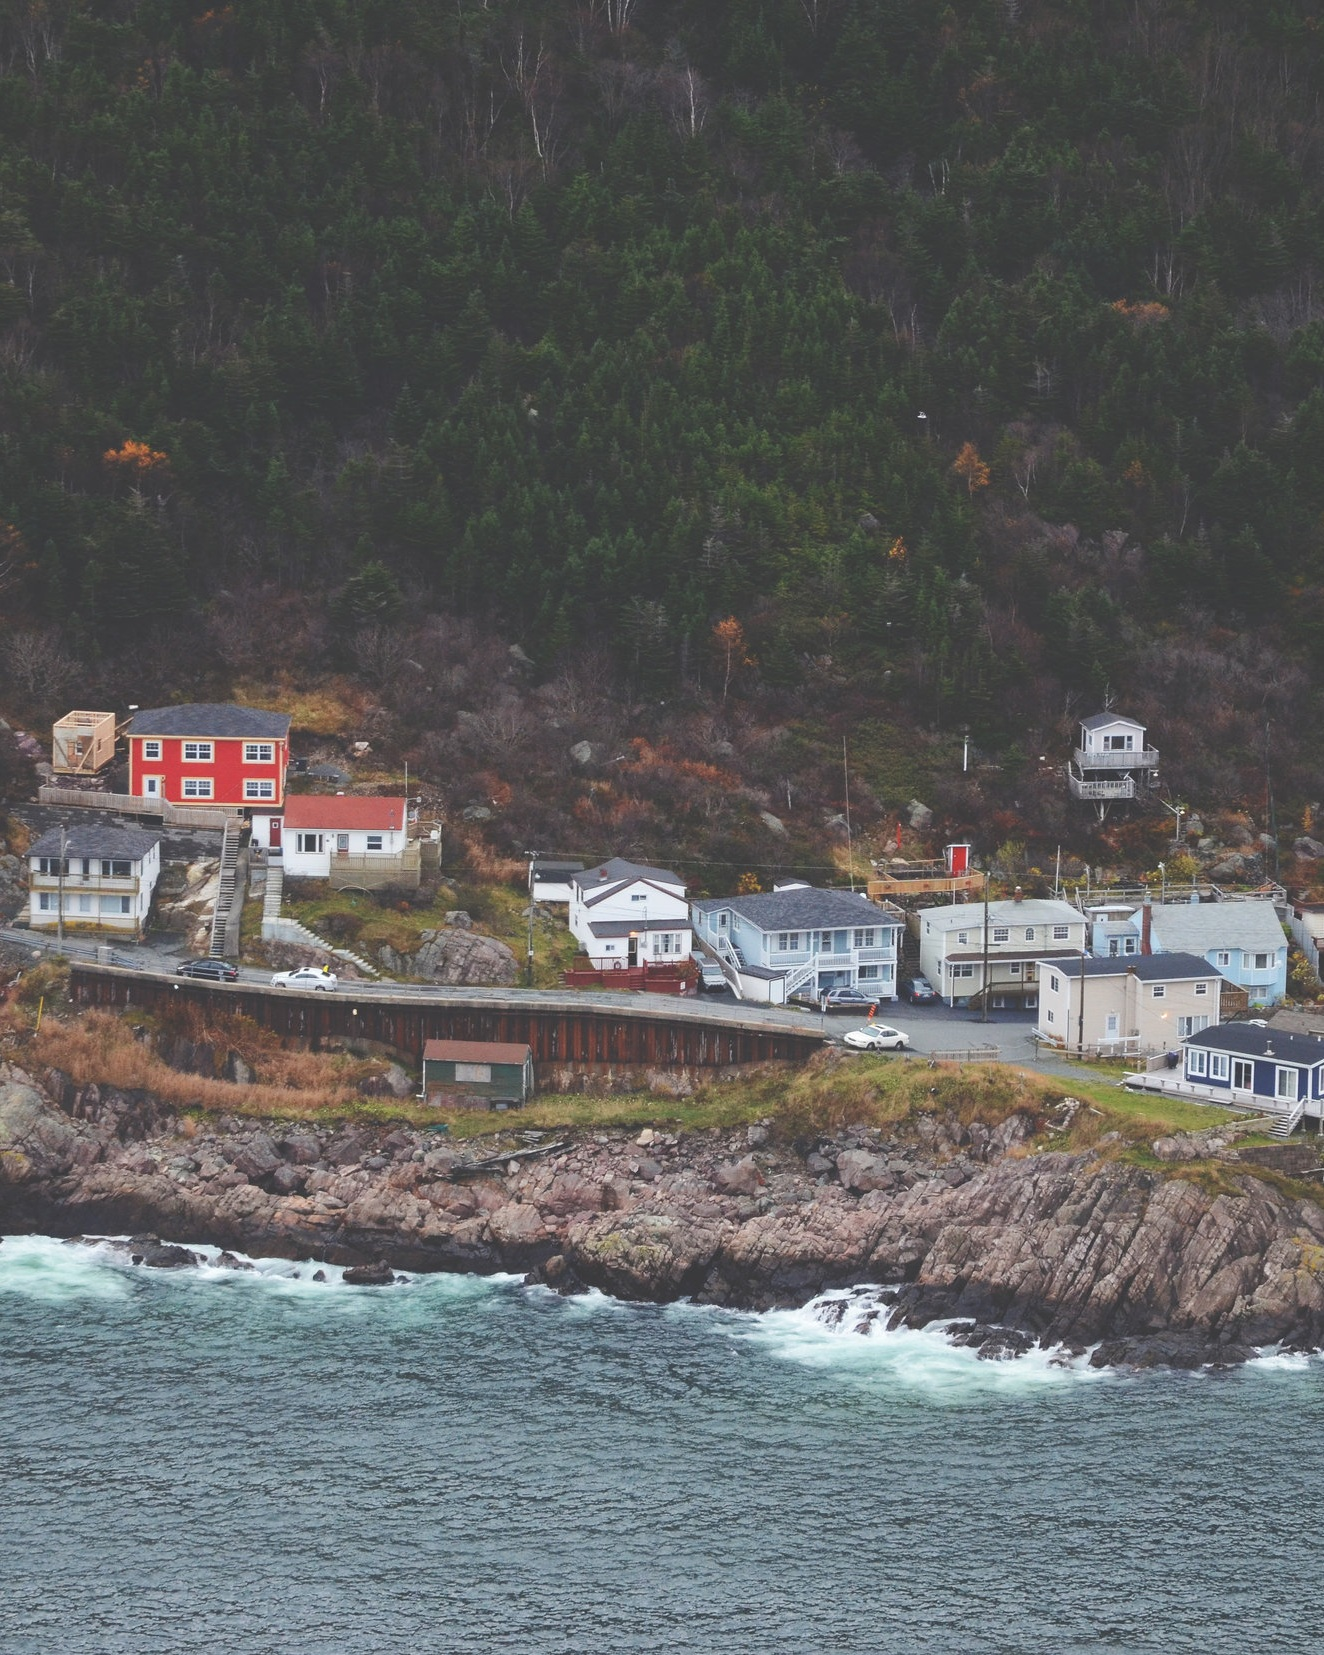 Newfoundland & Labrador - Newfoundland is one of the four Atlantic Provinces and is the most easterly province, made up of the island of Newfoundland and Labrador on the mainland. The mainland is larger than the island and is bordered by Quebec. About 525,300 people lived in Nfld/Labrador in 2018. People live in small fishing villages near the coast. Main exports are oil, fish products, newsprint, iron ore and electricity.